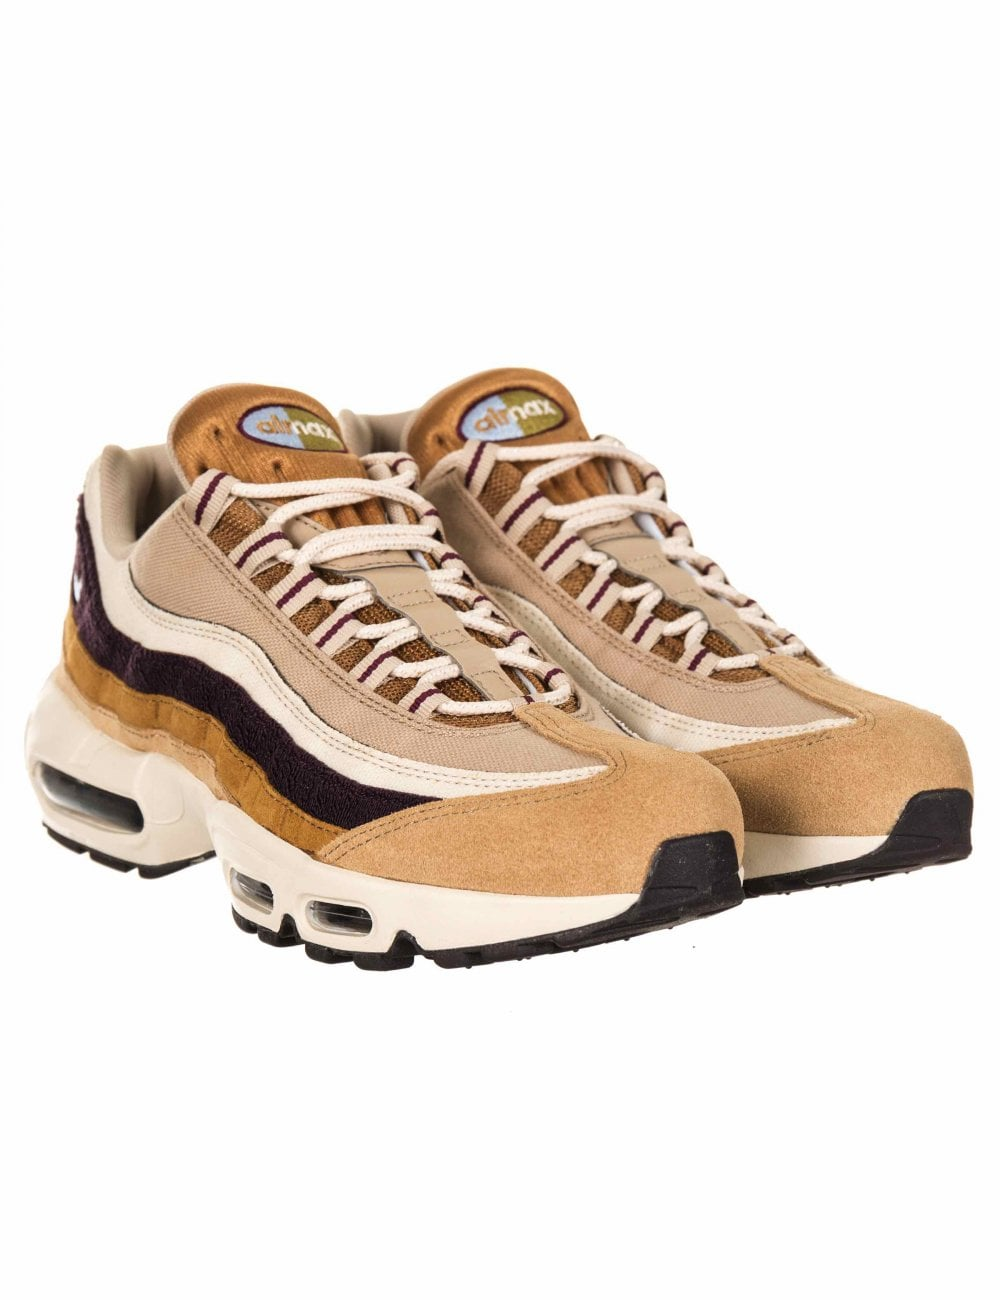 timeless design 17f85 90ef1 Air Max 95 Premium Trainers - Desert/Royal Tint